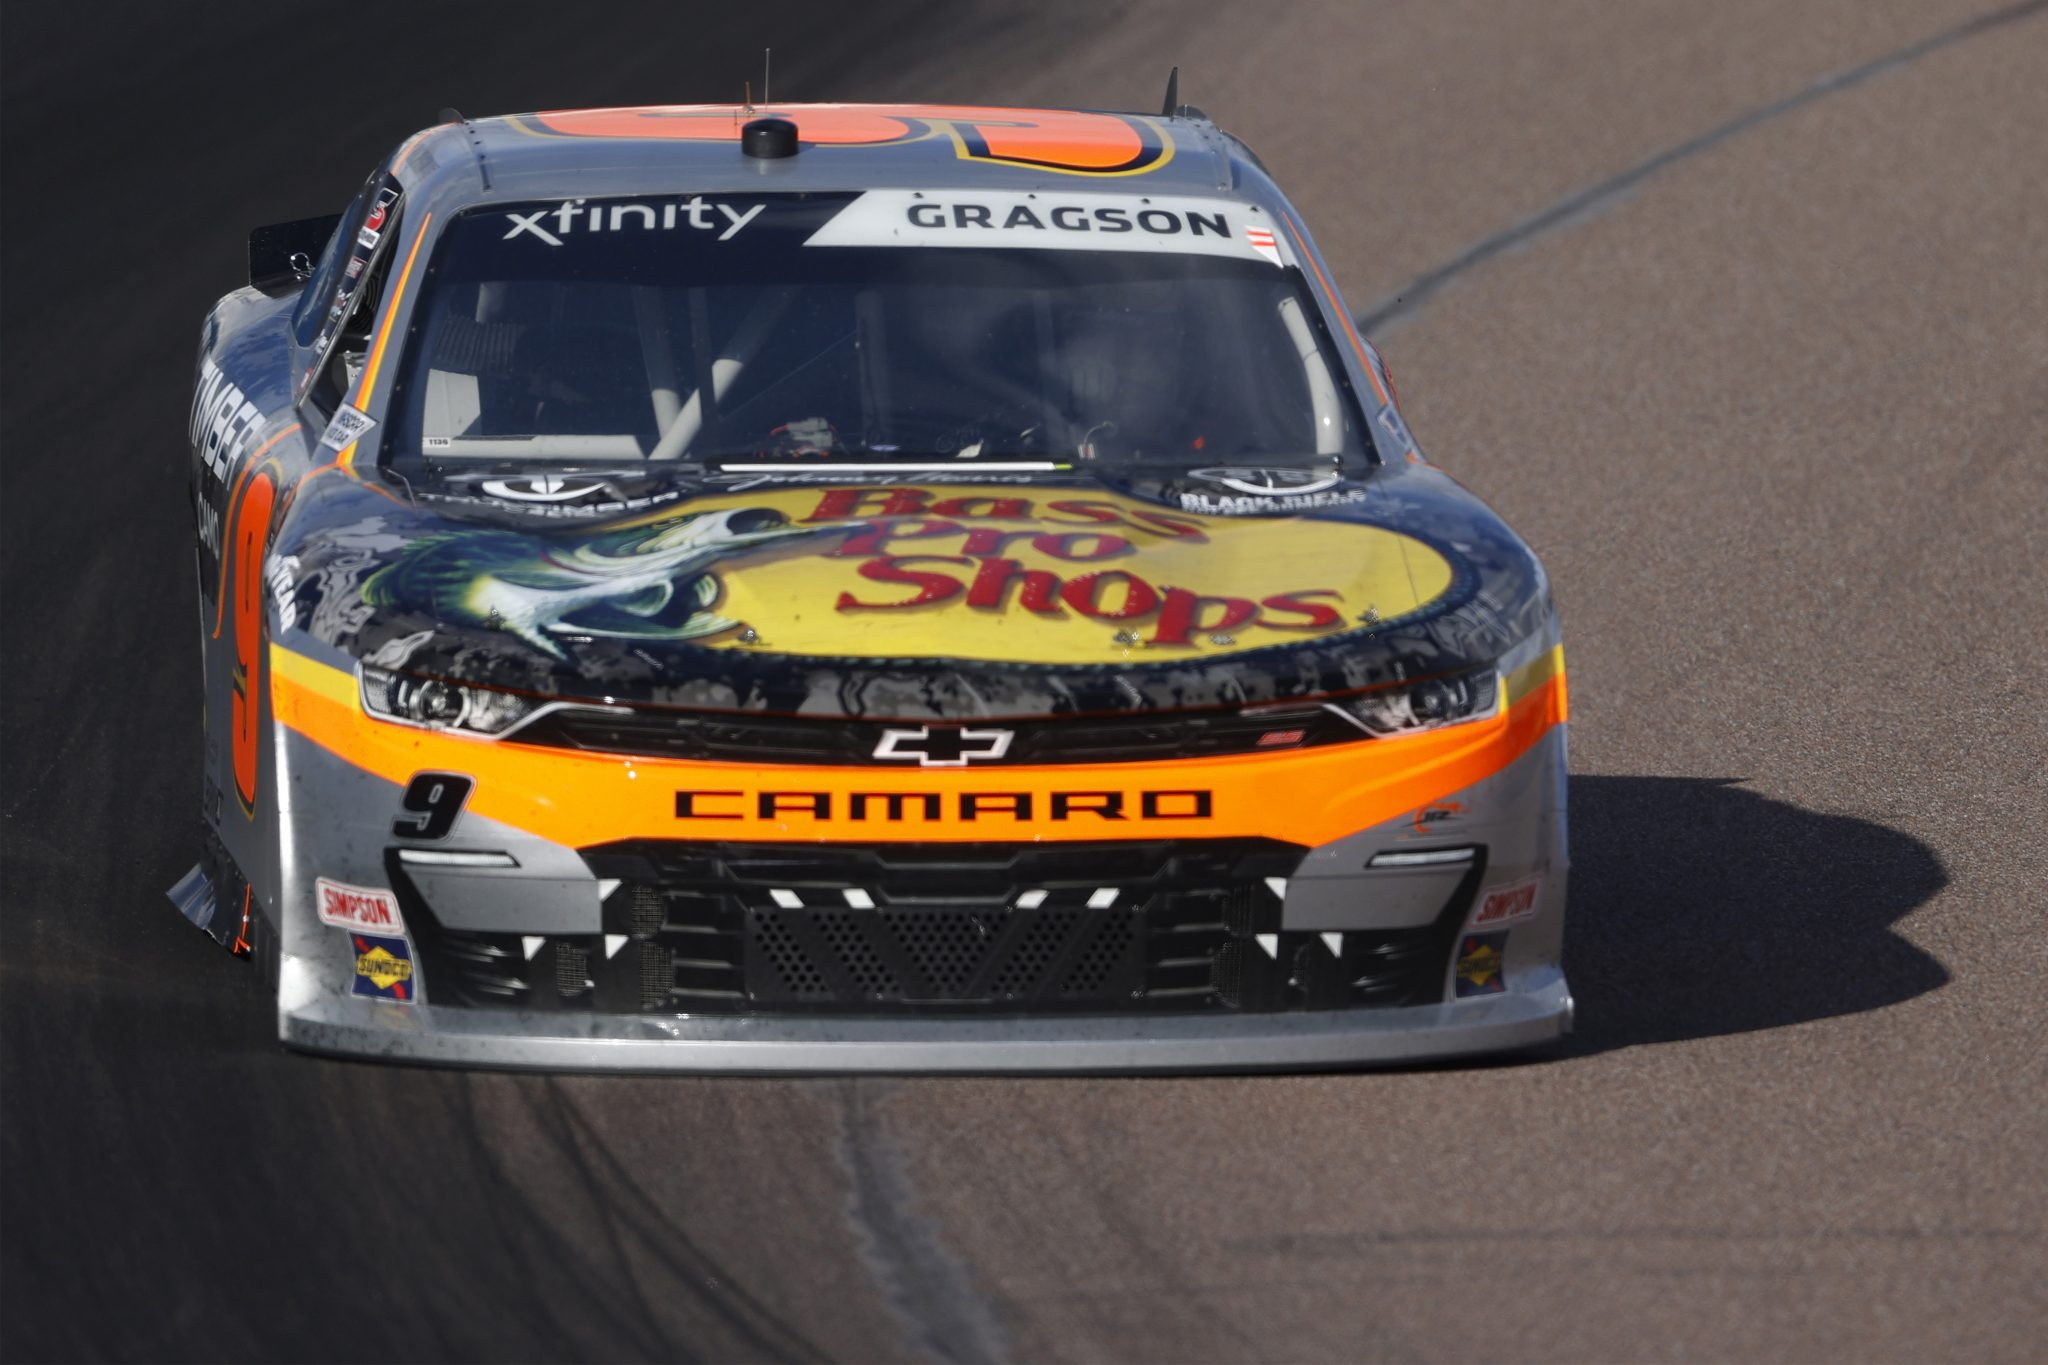 AVONDALE, ARIZONA - MARCH 13: Noah Gragson, driver of the #9 Bass Pro Shops/TrueTimber/BRCC Chevrolet, drives during the NASCAR Xfinity Series Call 811 Before You Dig 200 presented by Arizona 811 at Phoenix Raceway on March 13, 2021 in Avondale, Arizona. (Photo by Christian Petersen/Getty Images) | Getty Images